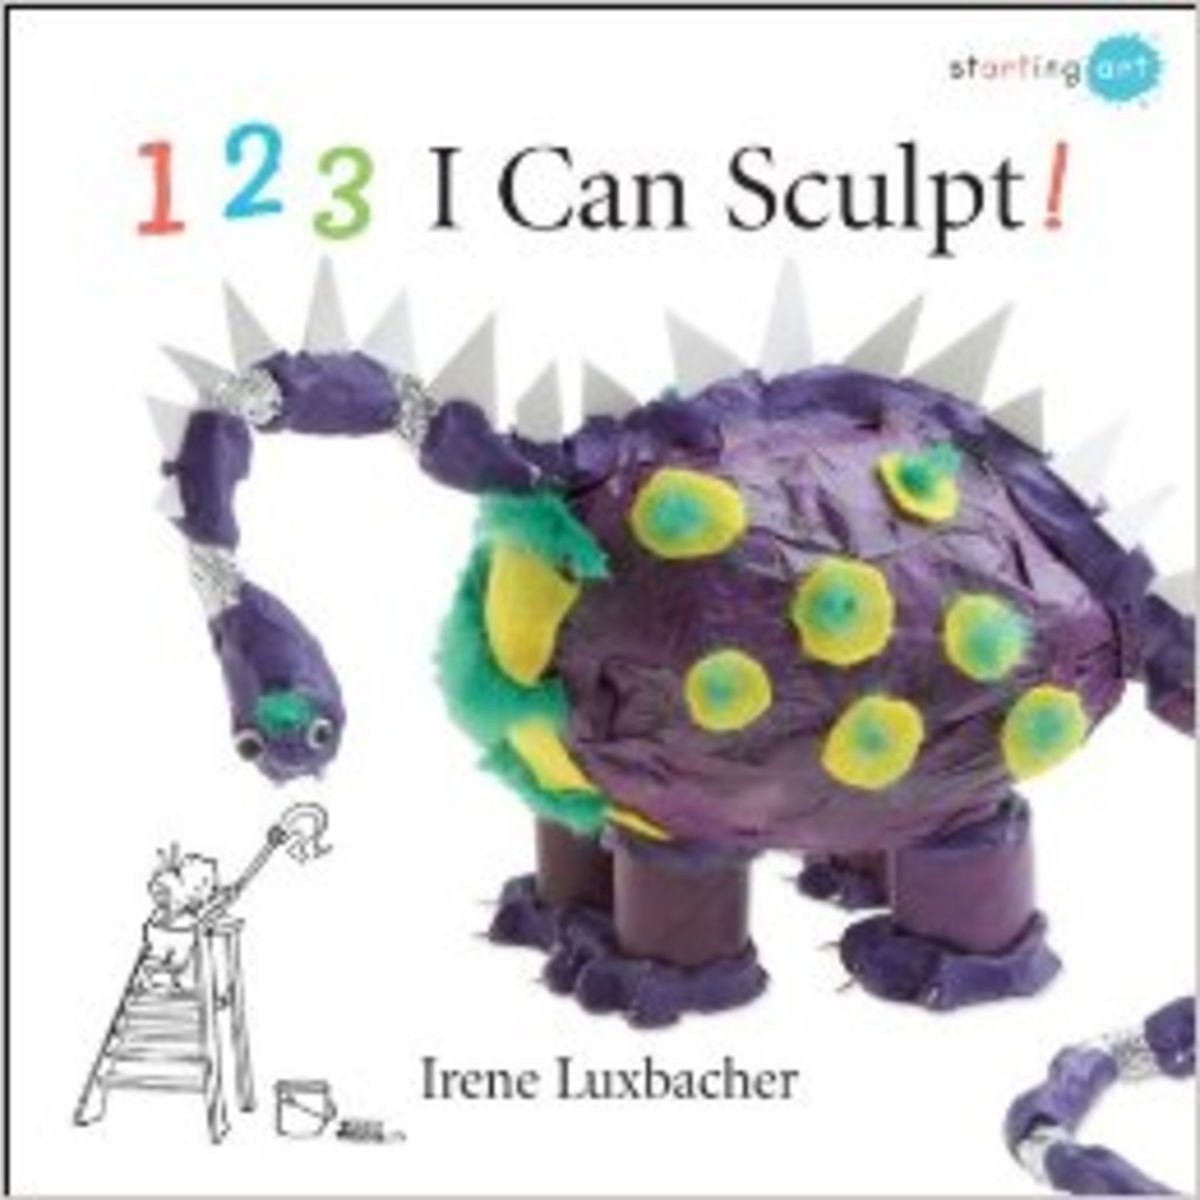 123 I Can Sculpt! (Starting Art) by Irene Luxbacher